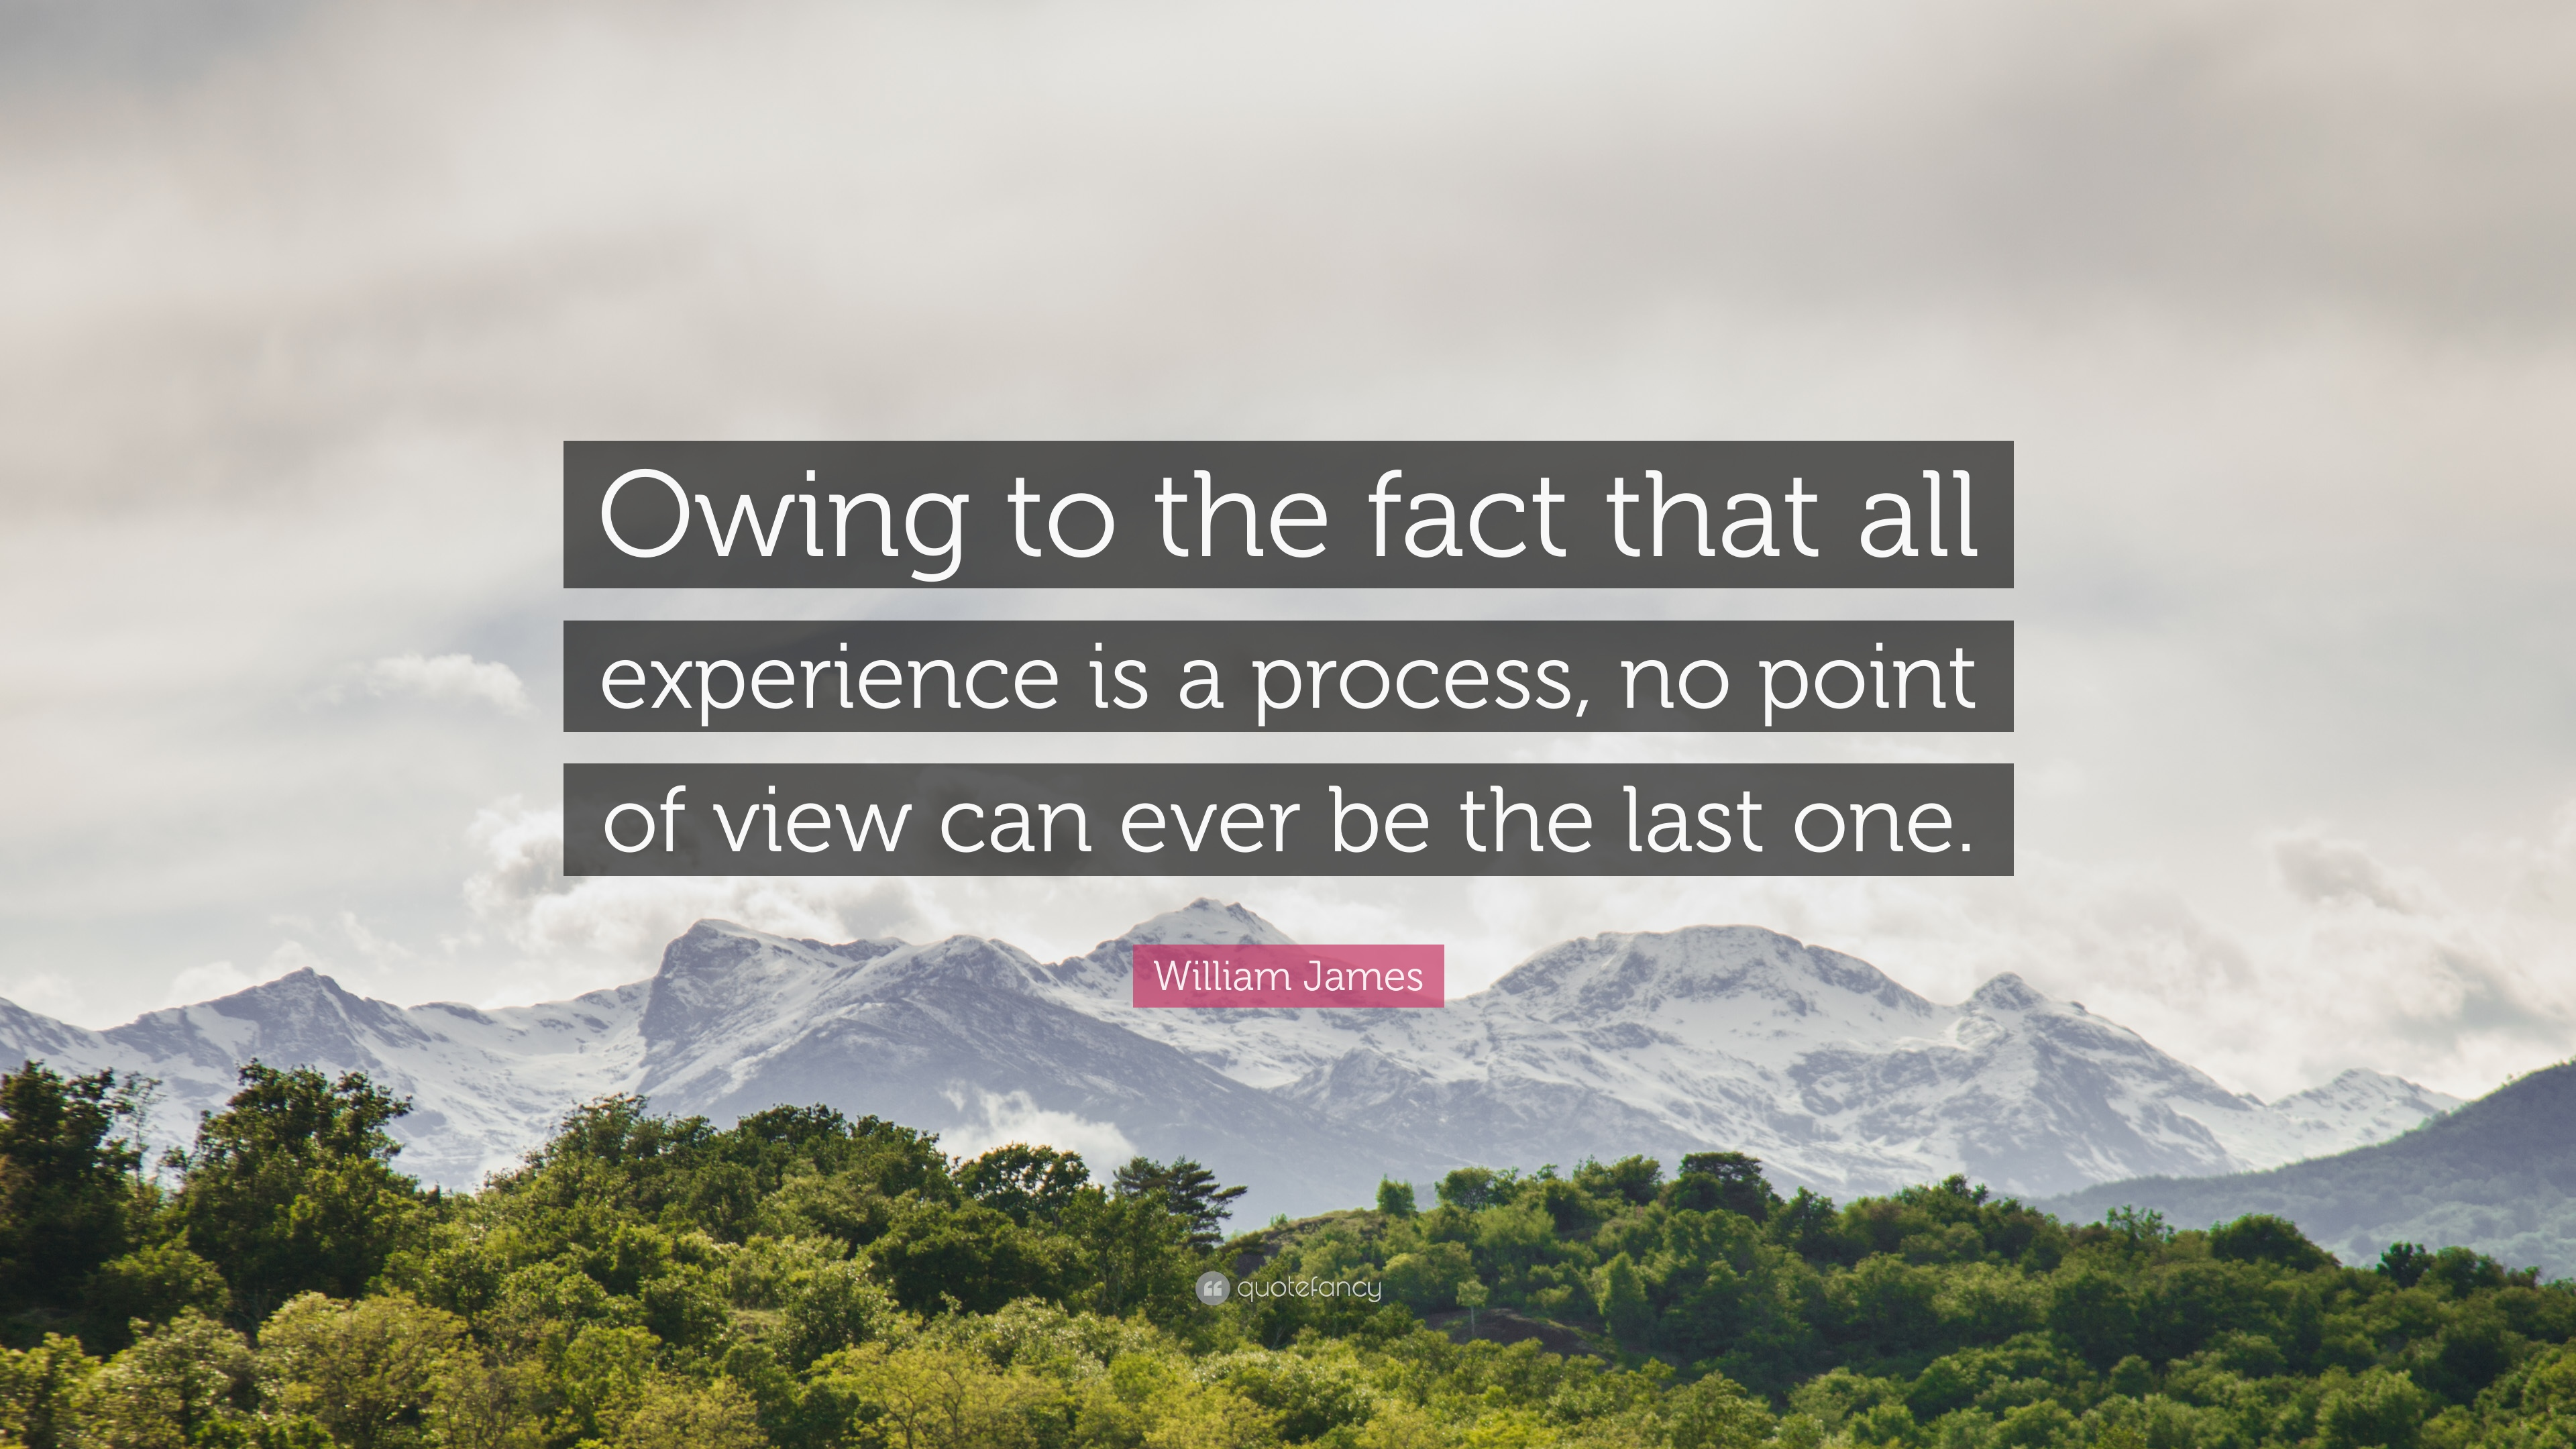 William James Quote Owing To The Fact That All Experience Is A Process No Point Of View Can Ever Be The Last One 7 Wallpapers Quotefancy